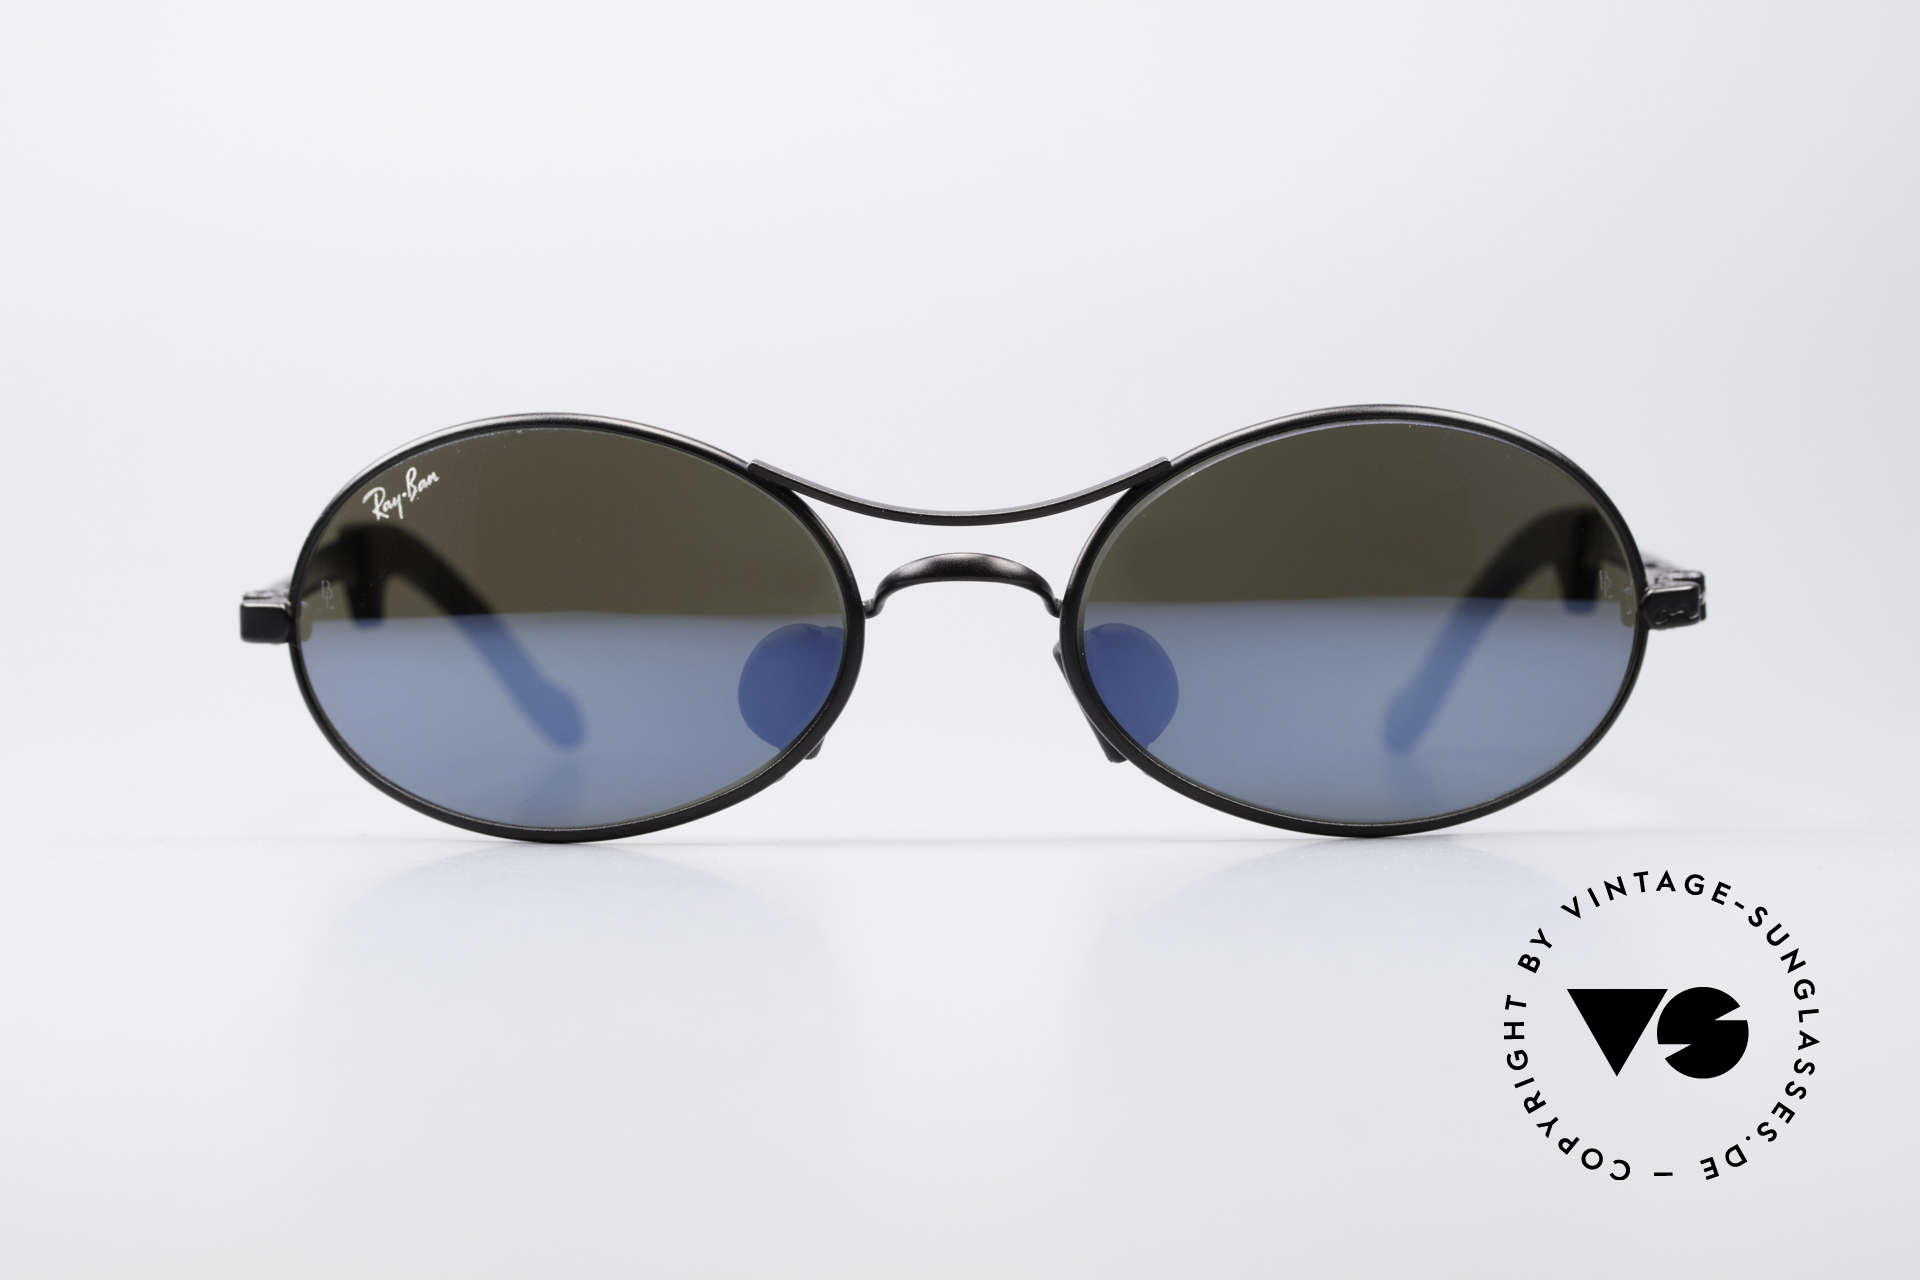 Ray Ban Orbs 9 Base Oval Blue Mirror B&L USA Shades, original vintage sunglasses from the late 1990's, USA, Made for Men